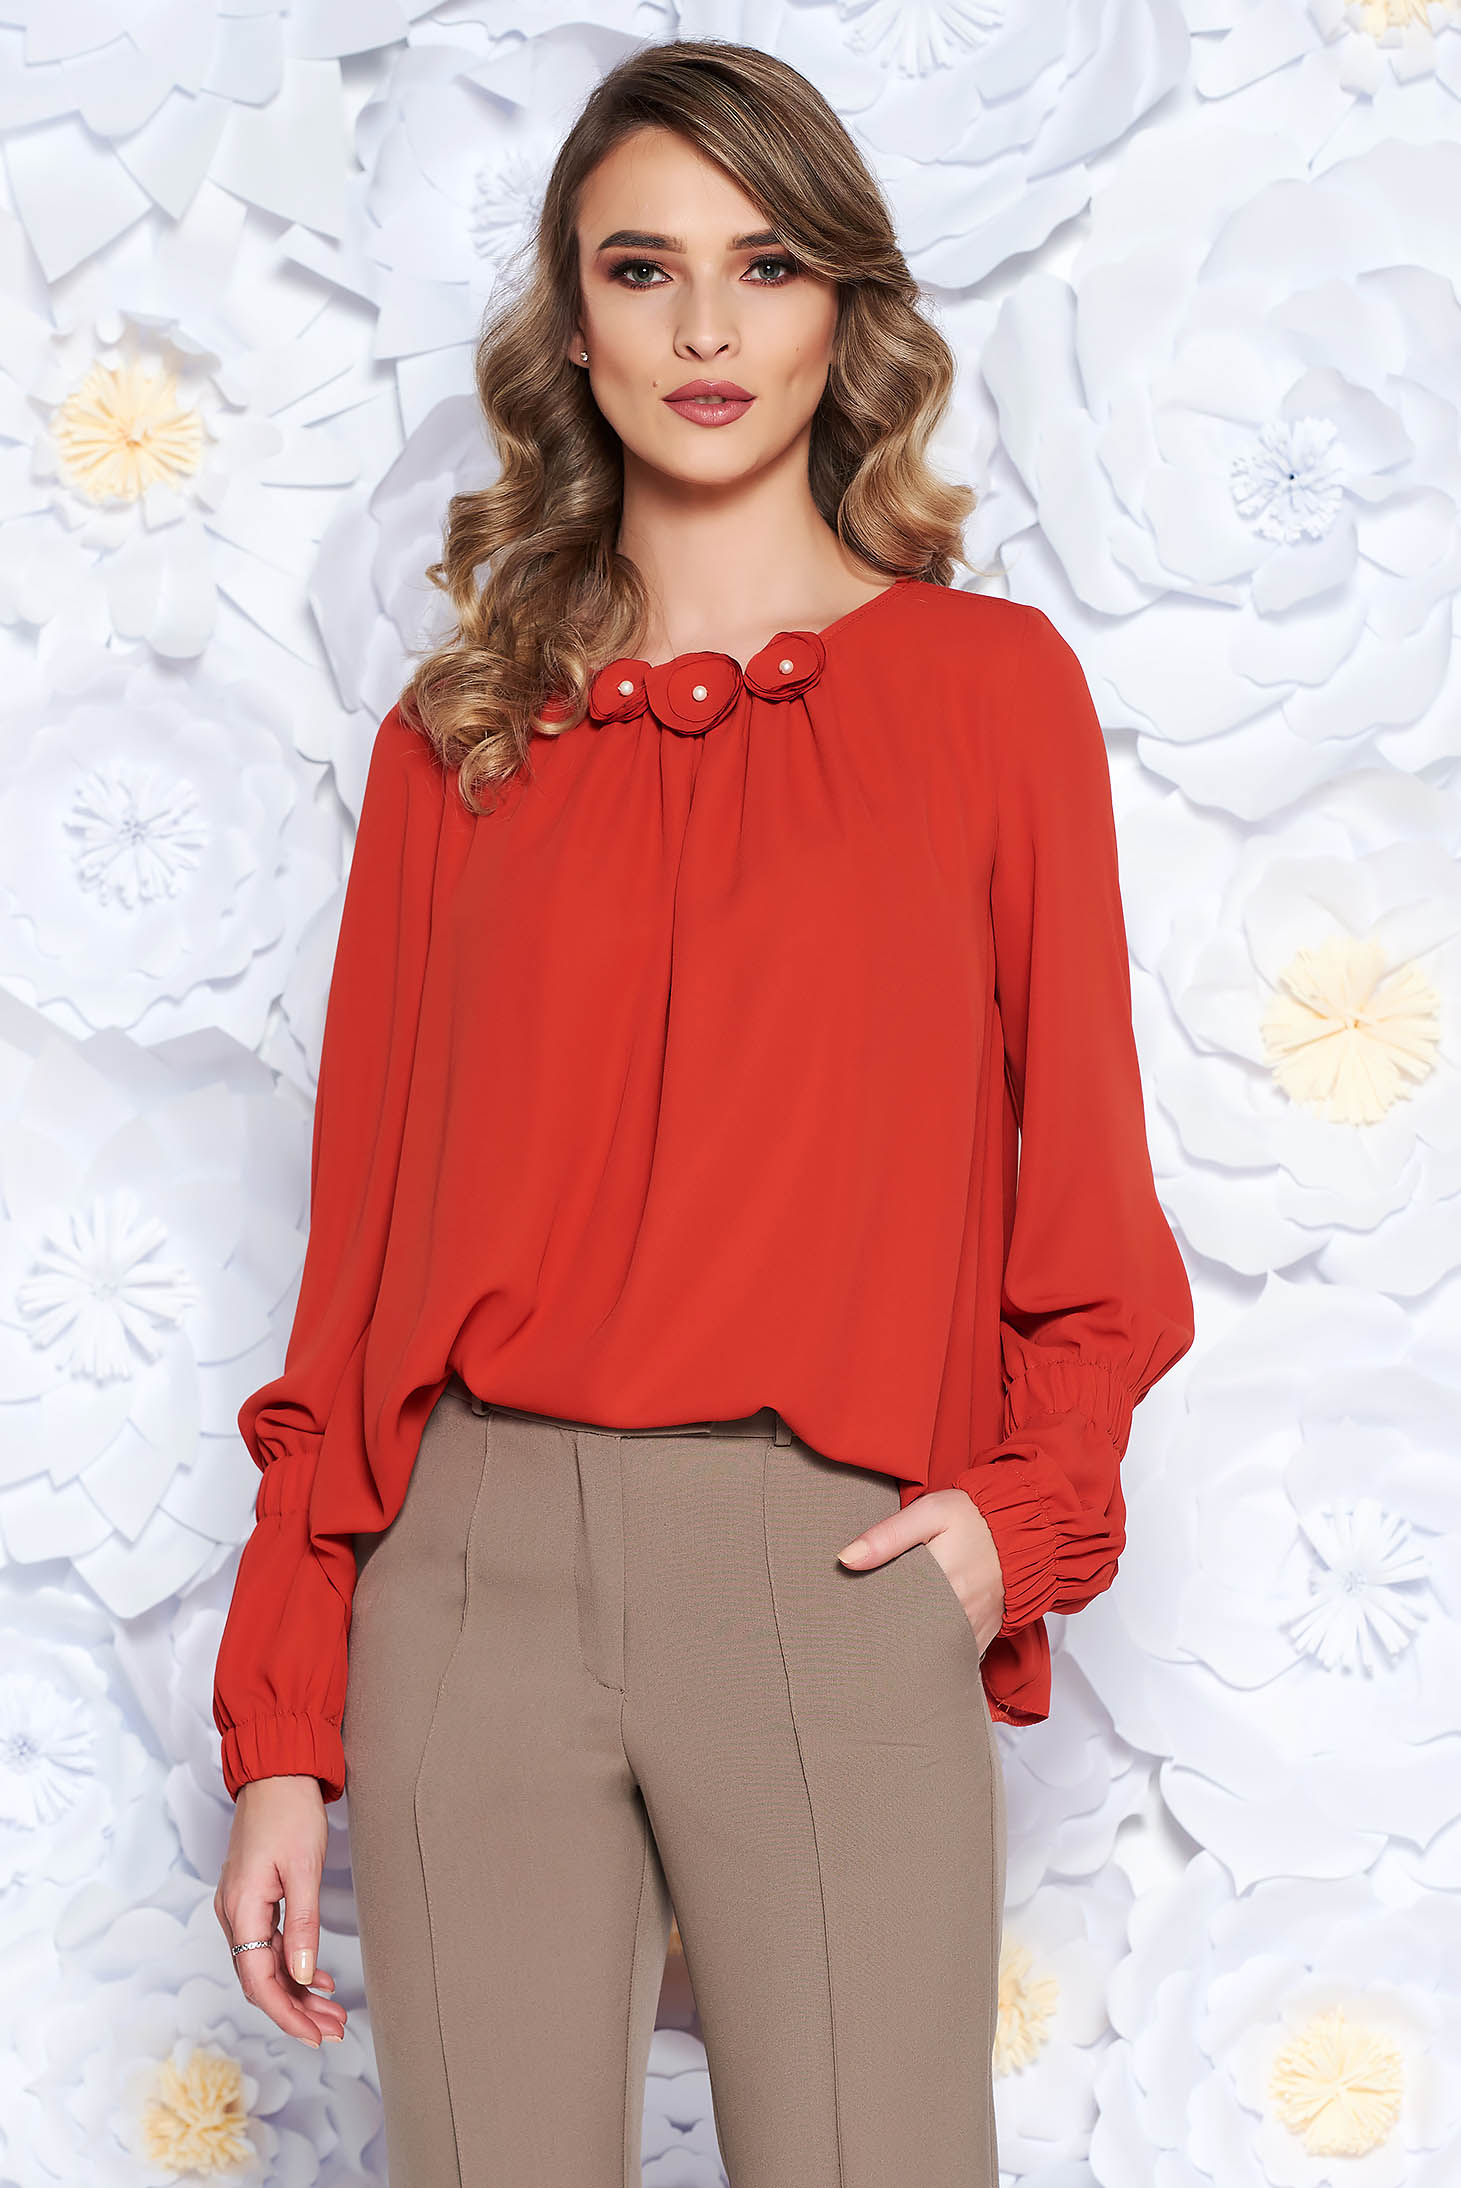 LaDonna bricky office flared women`s blouse from veil with floral details with inside lining